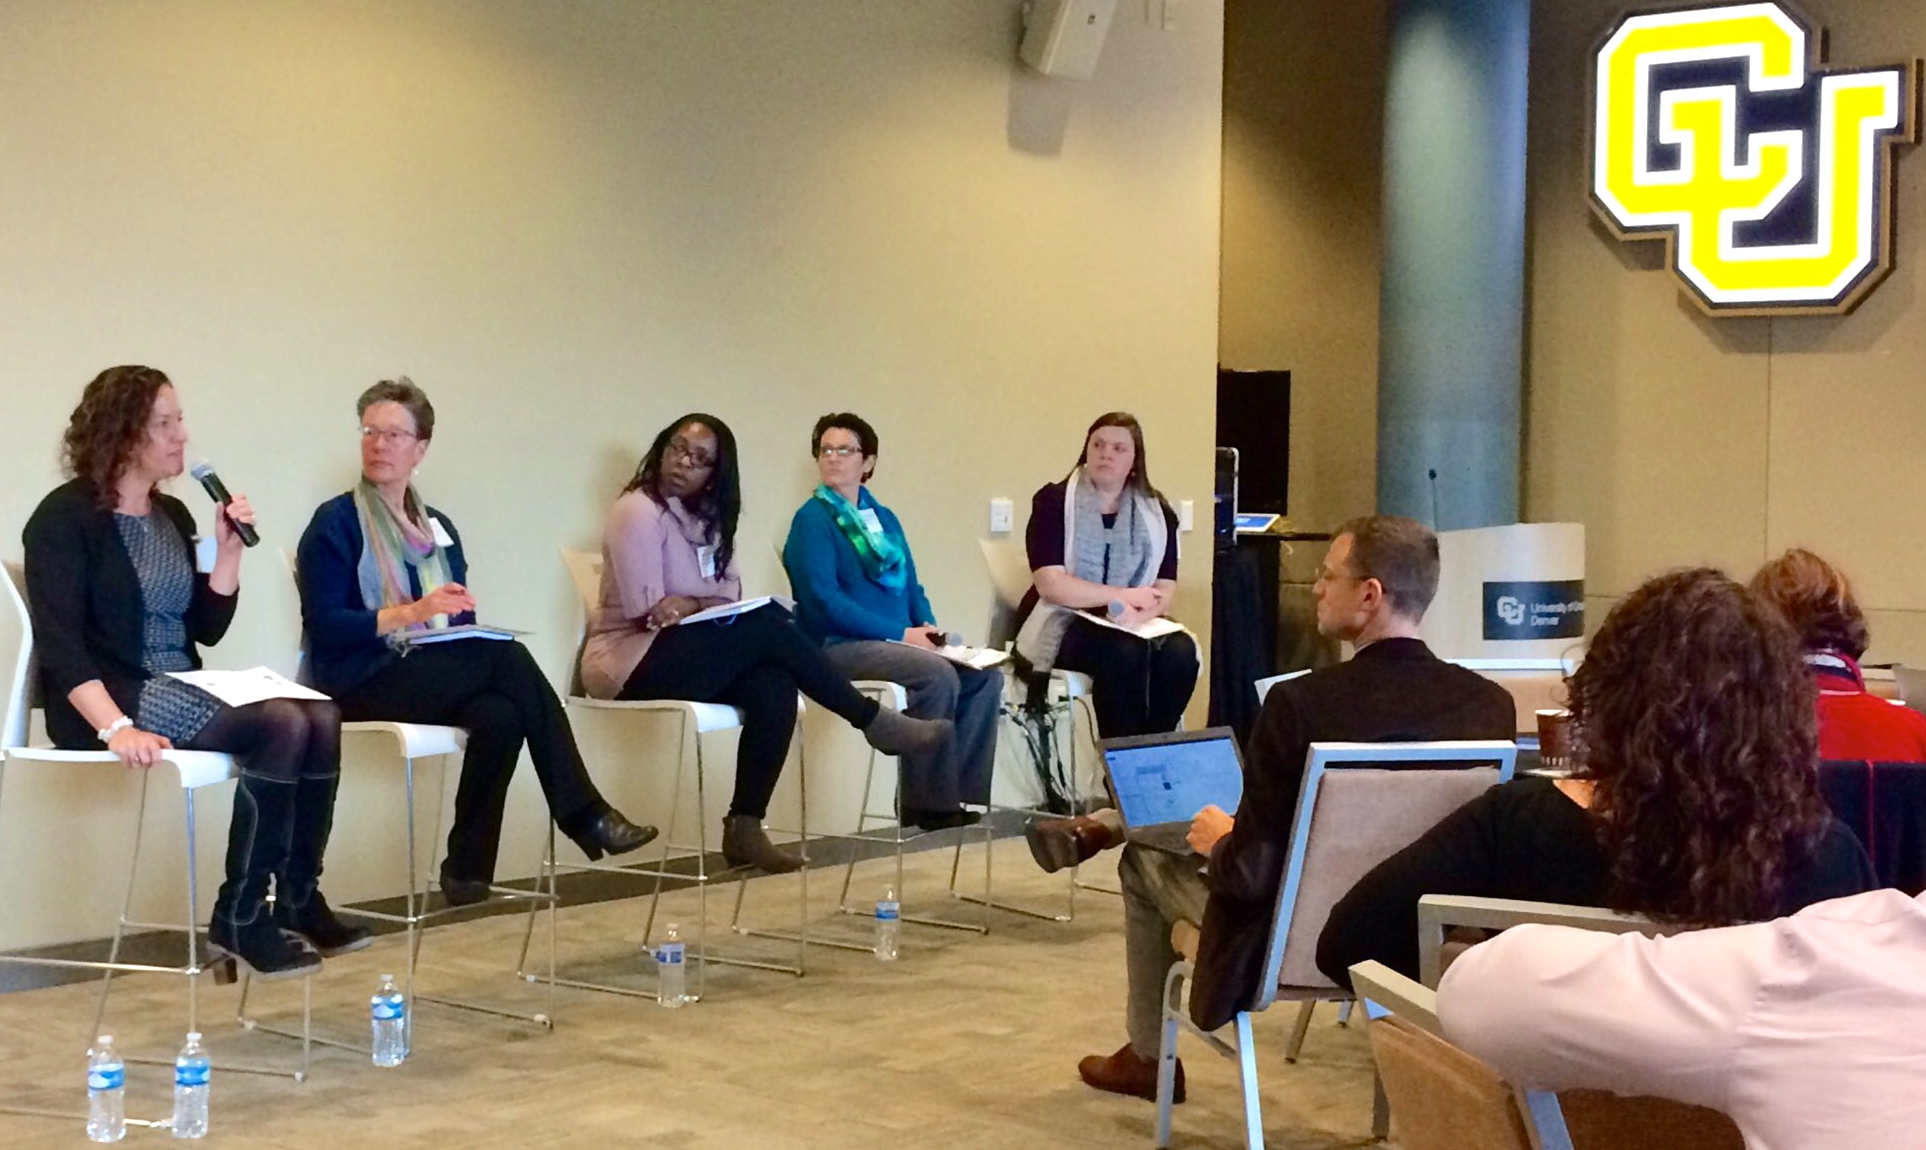 Shannon Nicholas leads a panel on how credentialing fits into the big picture featuring Mary Anne Hunter of the CO Dept. of Education, Amy Anderson of the Donnell-Kay Foundation, Renise Walker of the Colorado Workforce Development Council, and Robin Russell of the CO Dept. of Education.